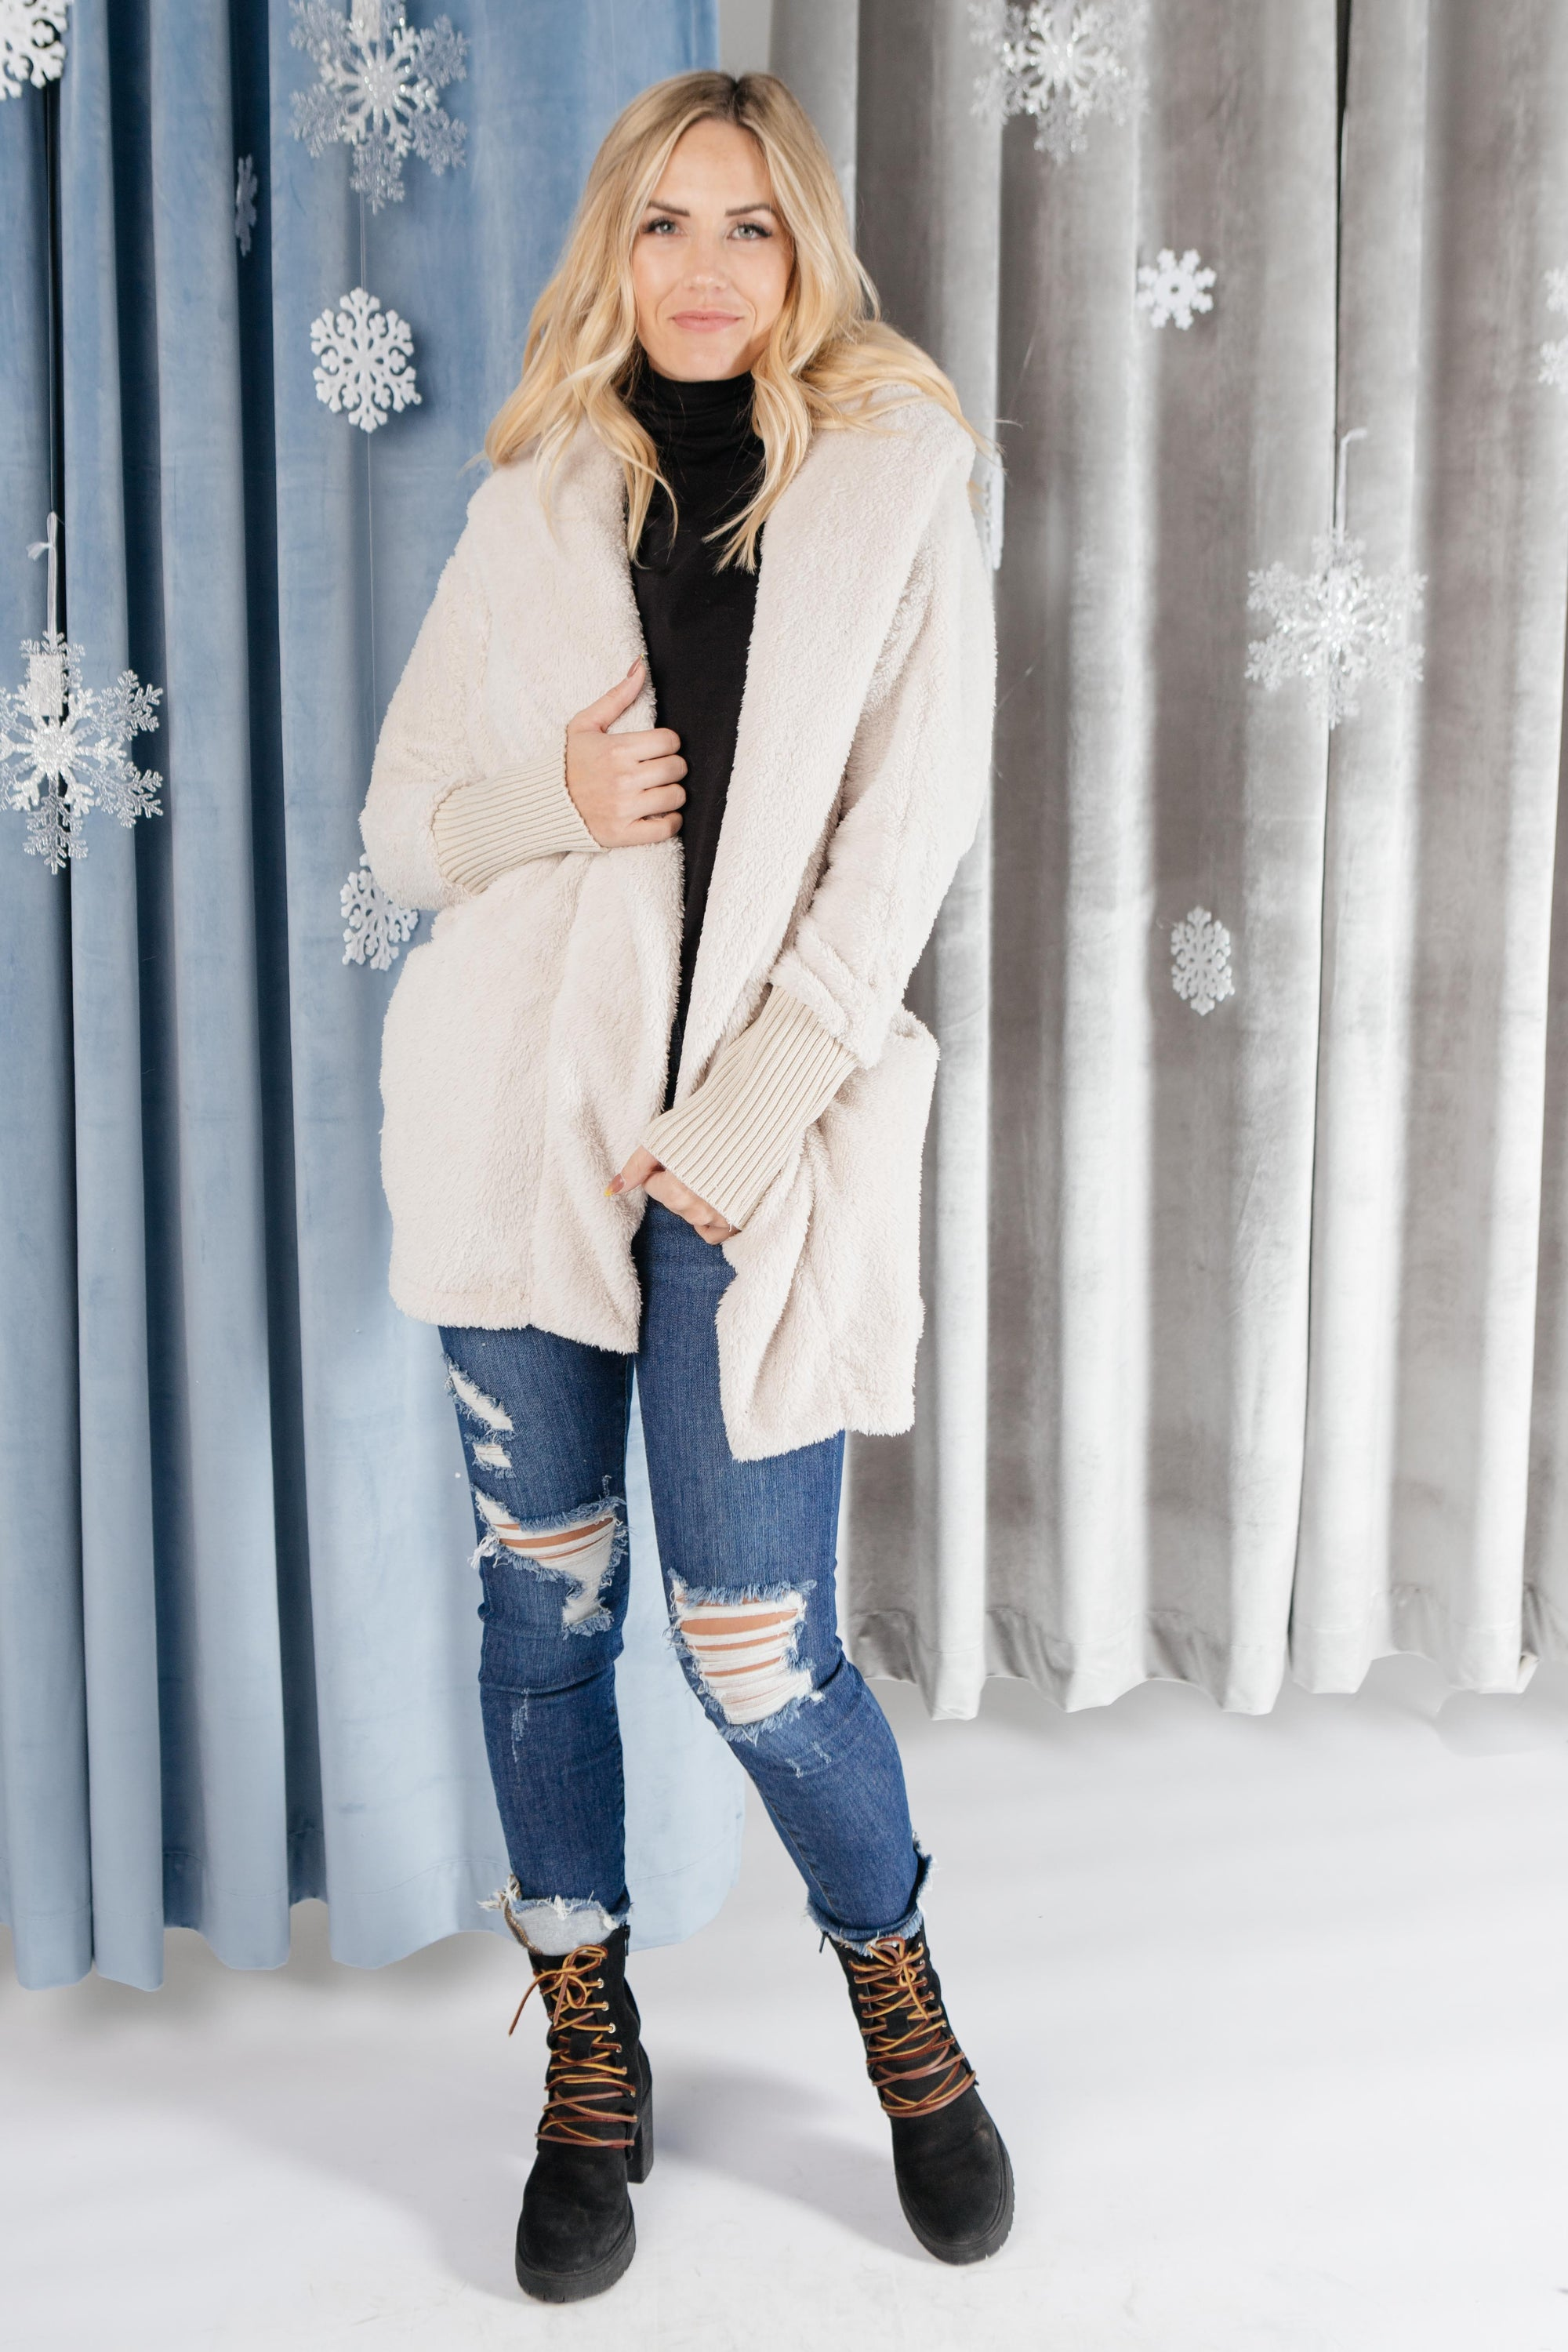 Overly Cozy Cardigan in Ivory-Ave Shops-Avis Lane Boutique-Justin, Texas